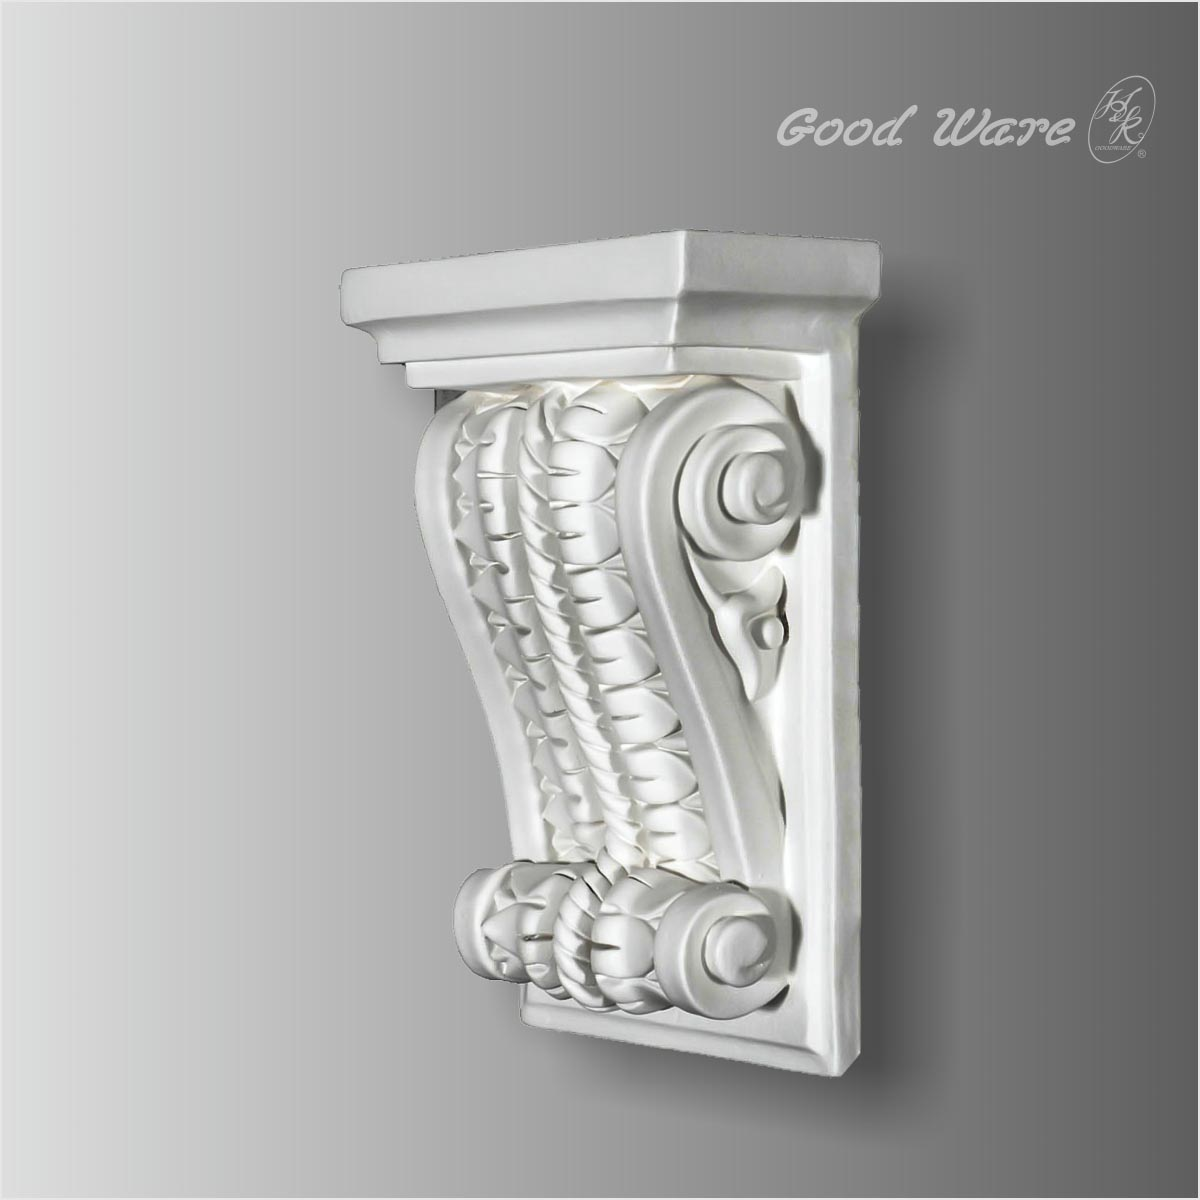 Polyurethane decorative rope shelf corbels bracket